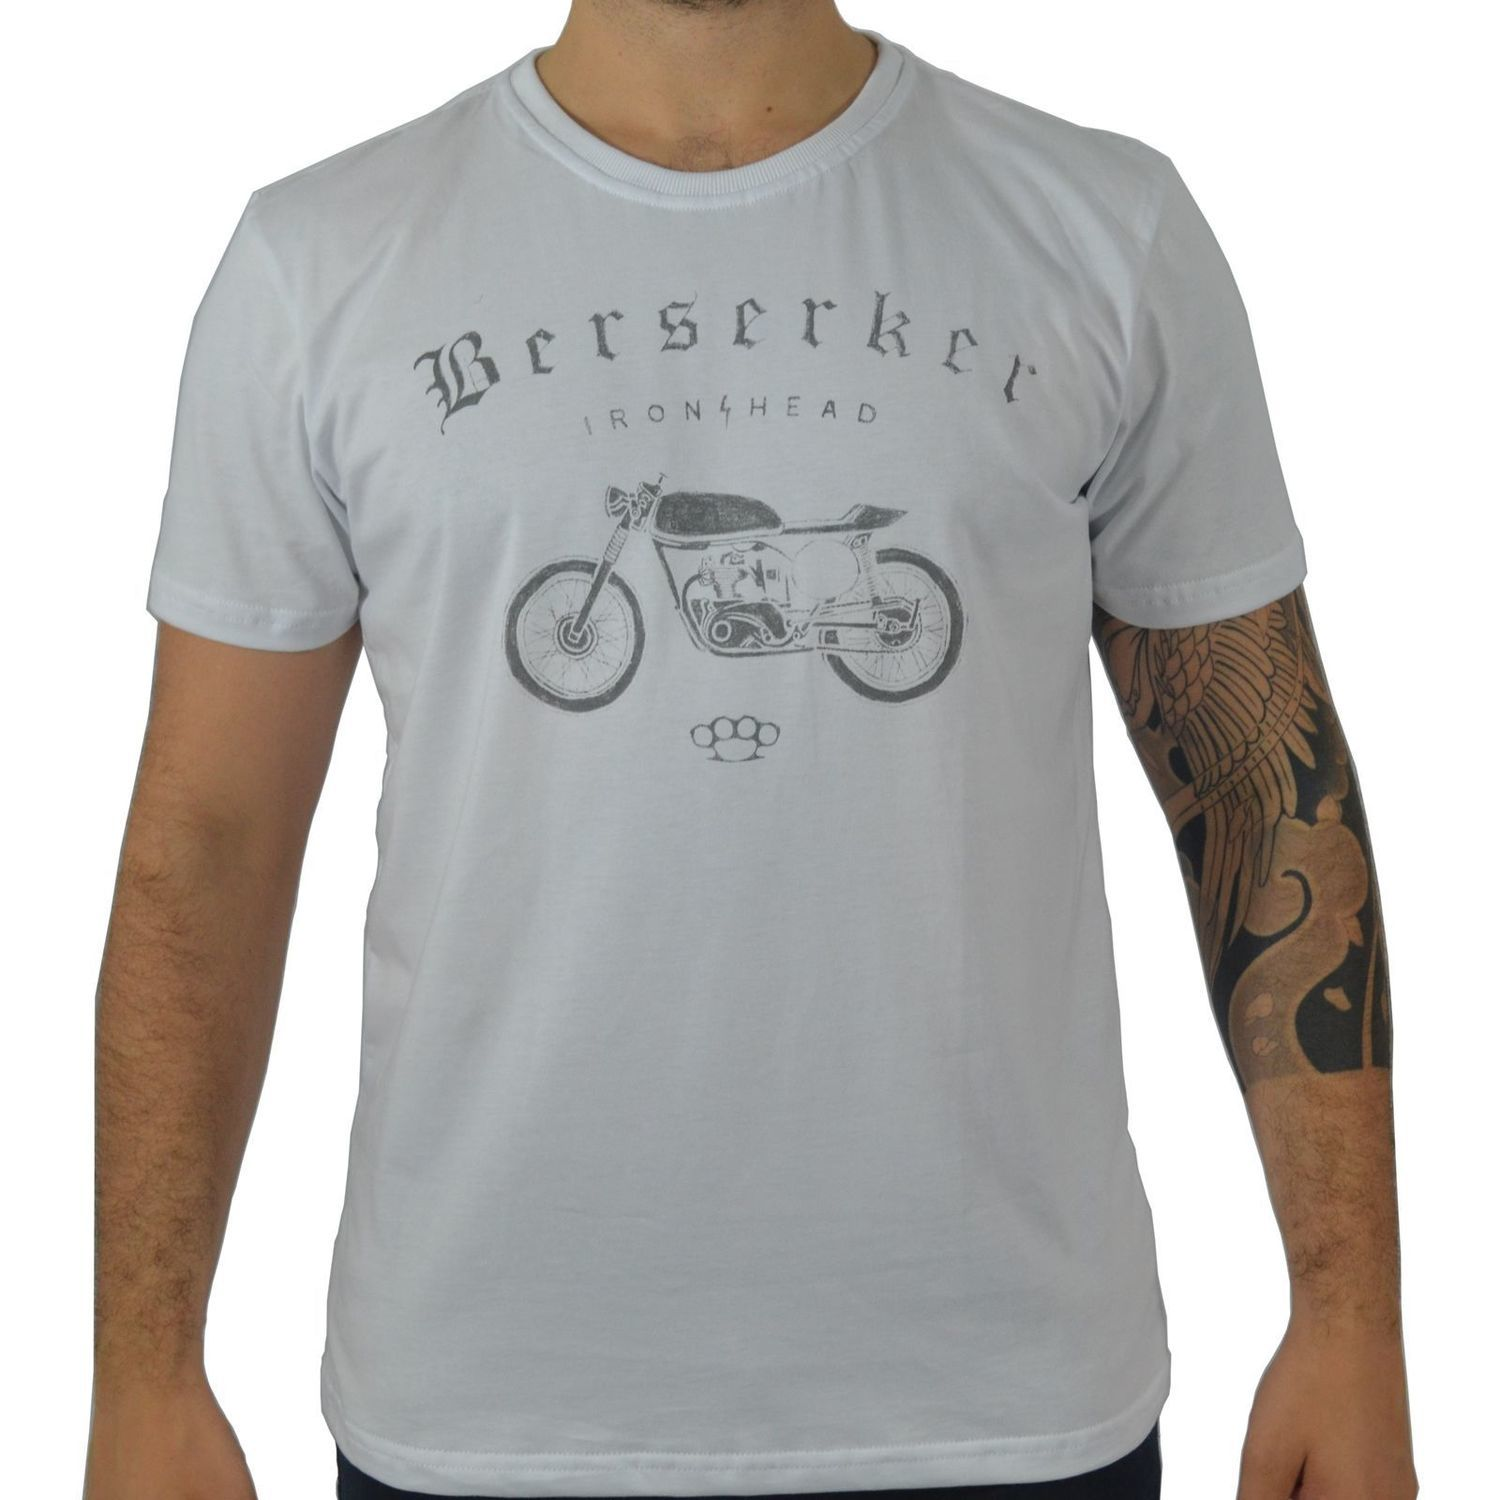 Camiseta Masculina Fallon & Co. Iron Head Branca